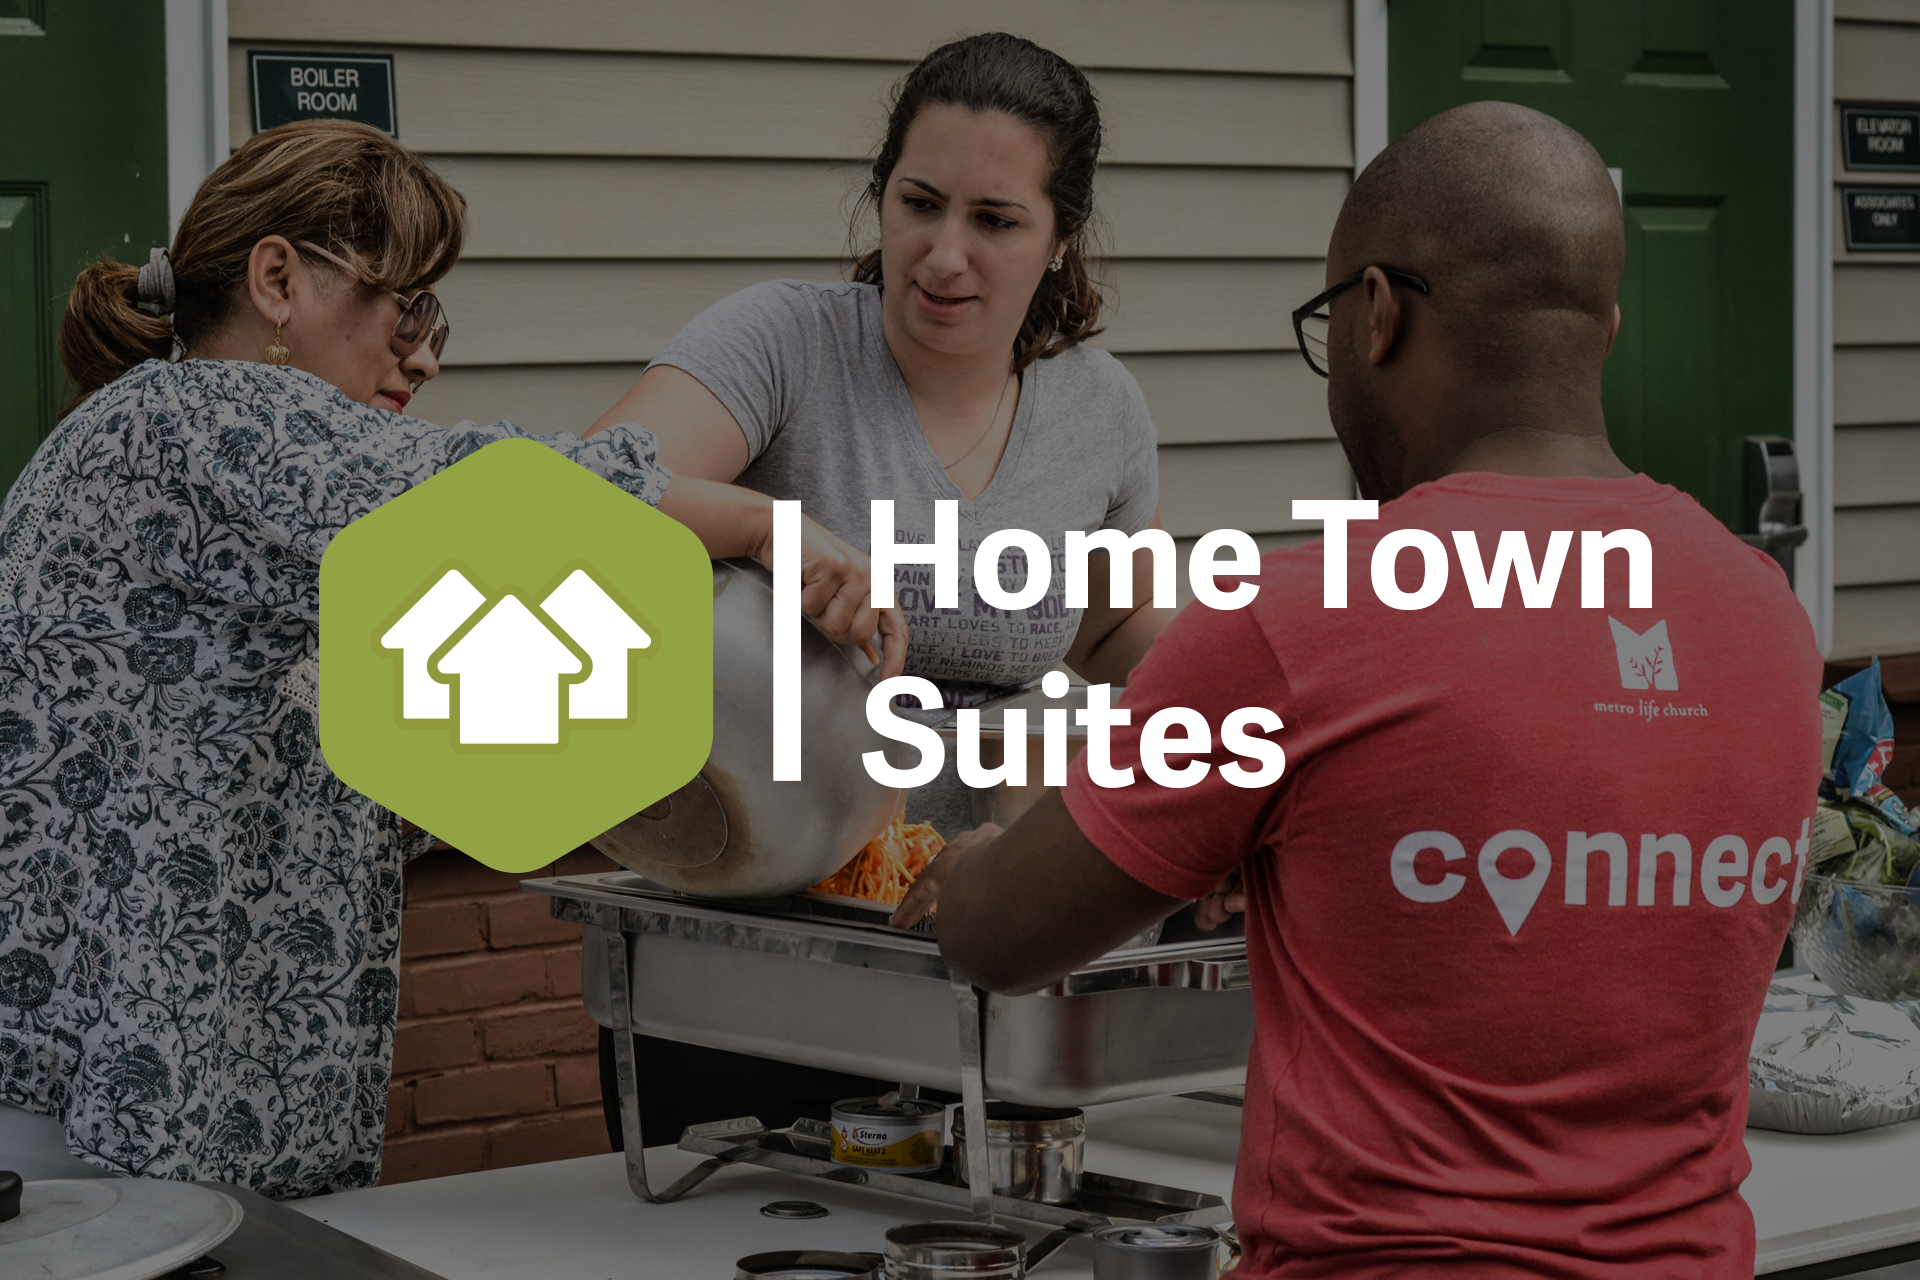 Home Towne Suites image